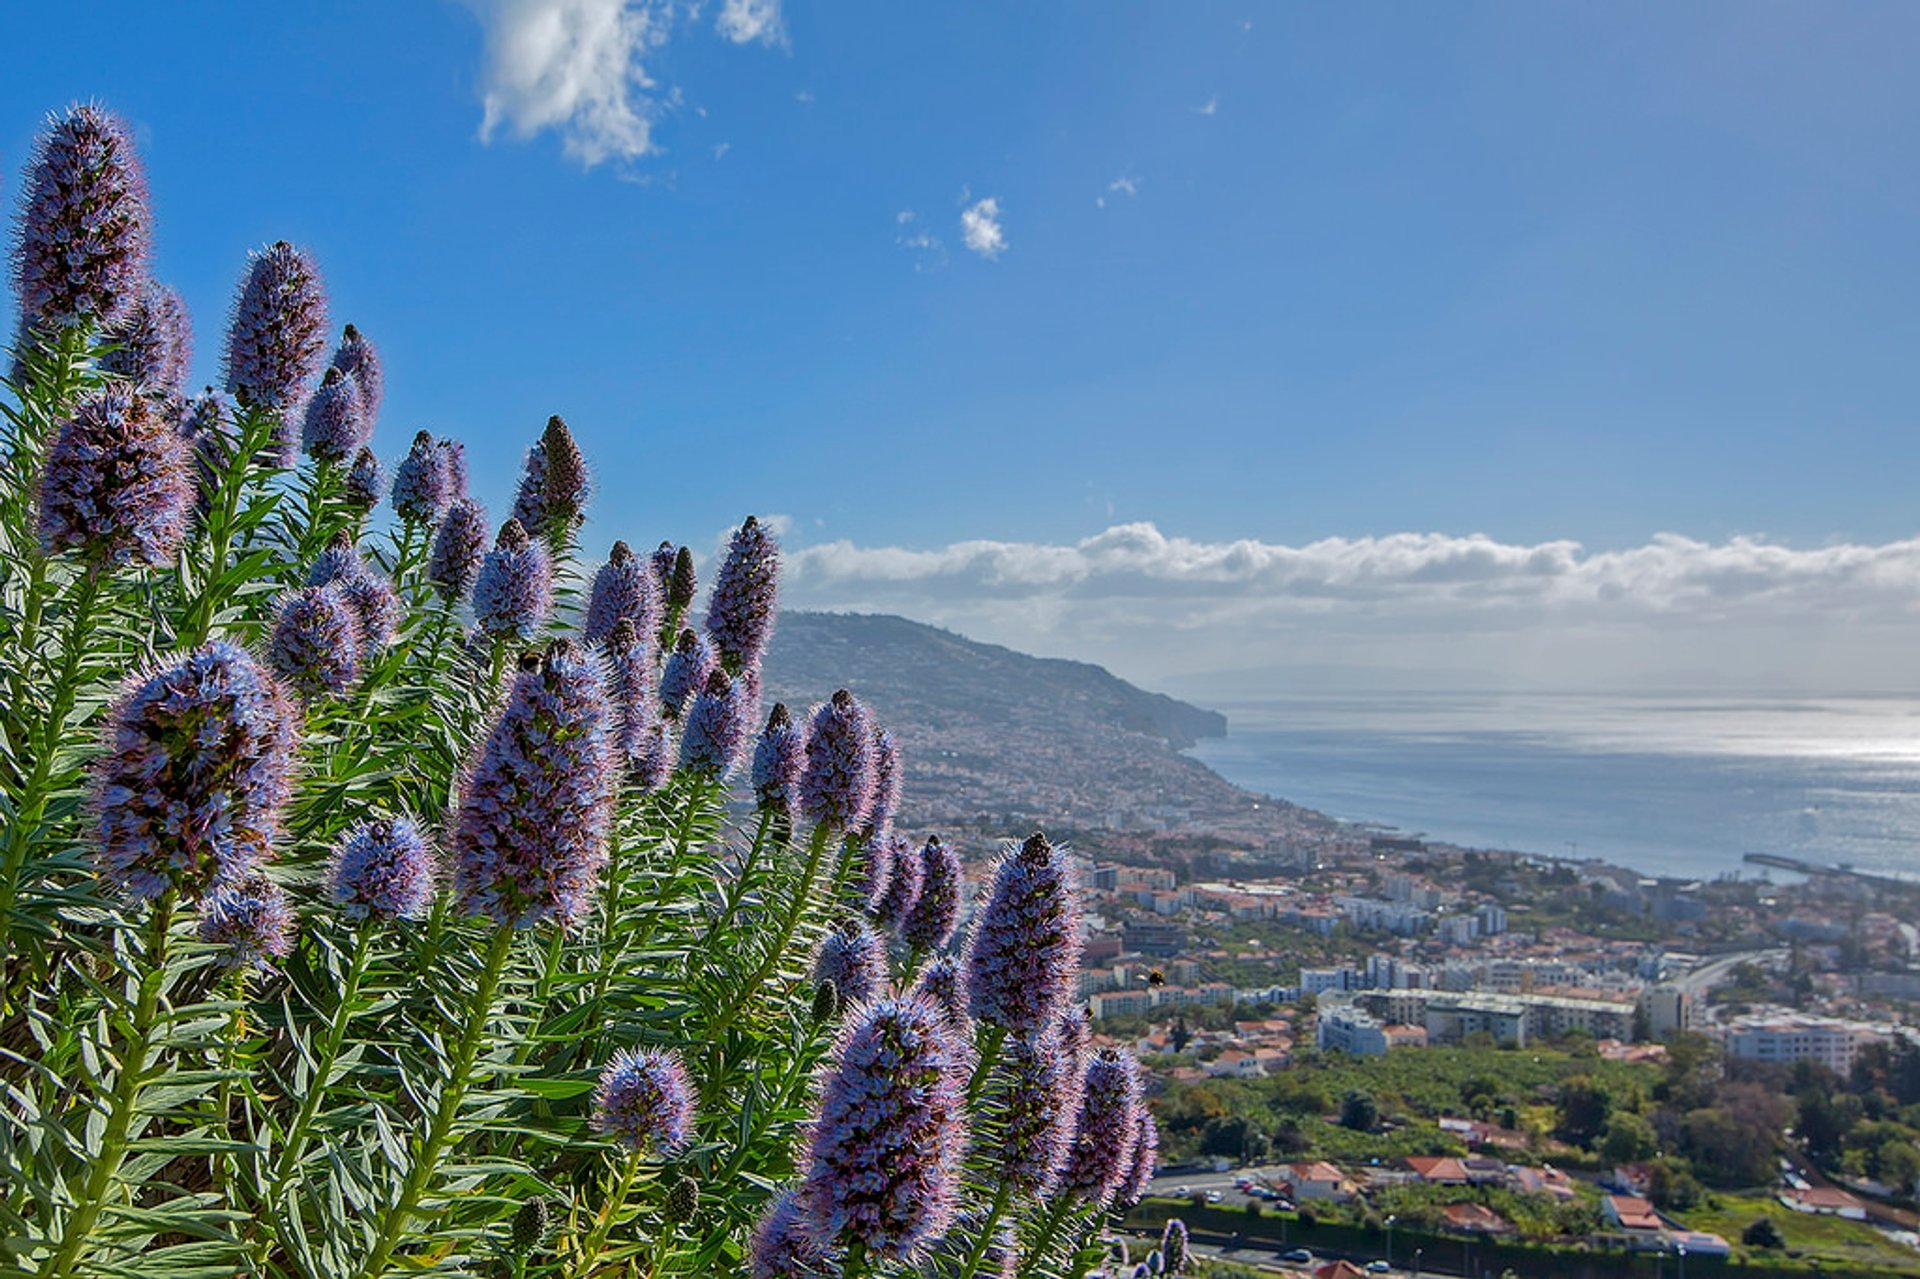 Echium or Pride of Madeira in Madeira 2019 - Best Time